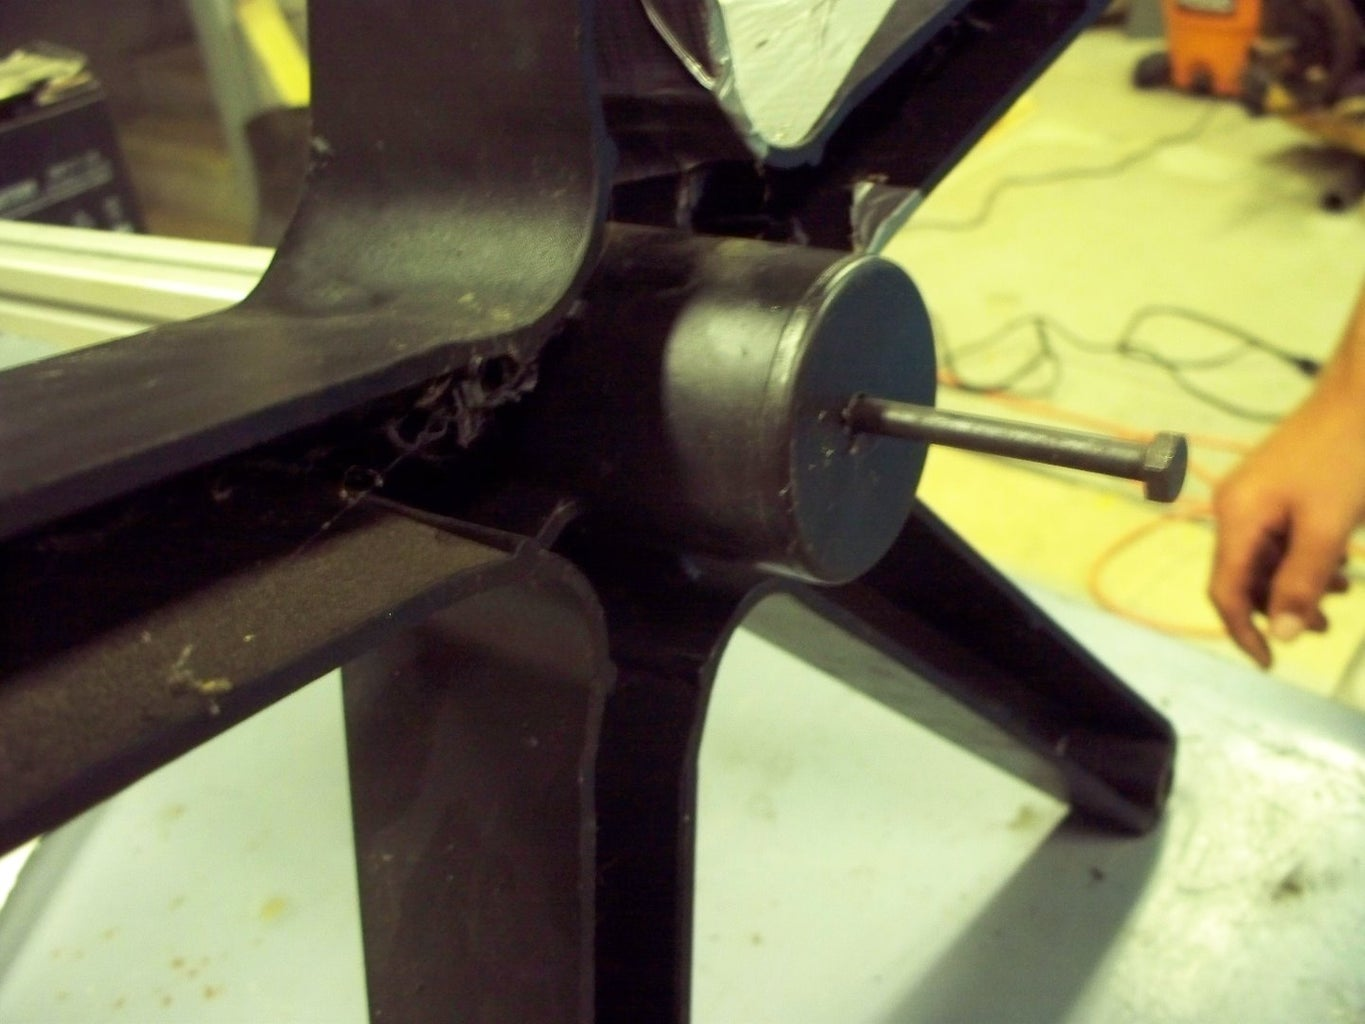 Inserting the Pipe Into the Chair Platform